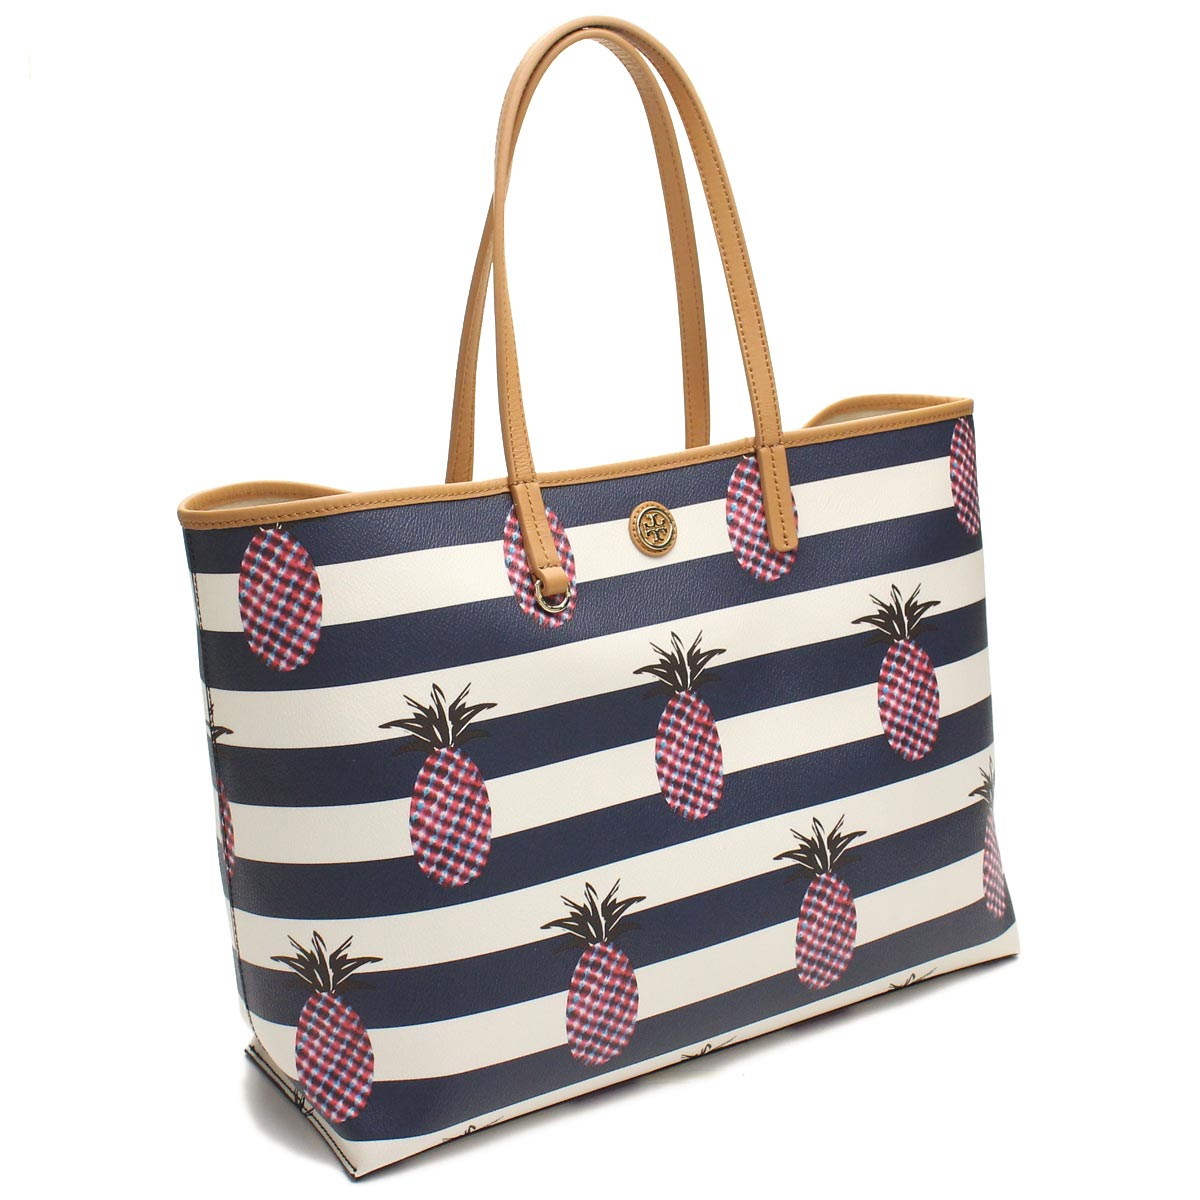 59bf9437e17 Bighit The total brand wholesale  Tory Burch (TORY BURCH) tote bag 12159540  977 LAR PINEAPPLE STRIPE multicolor( taxfree send by EMS authentic A brand  new ...